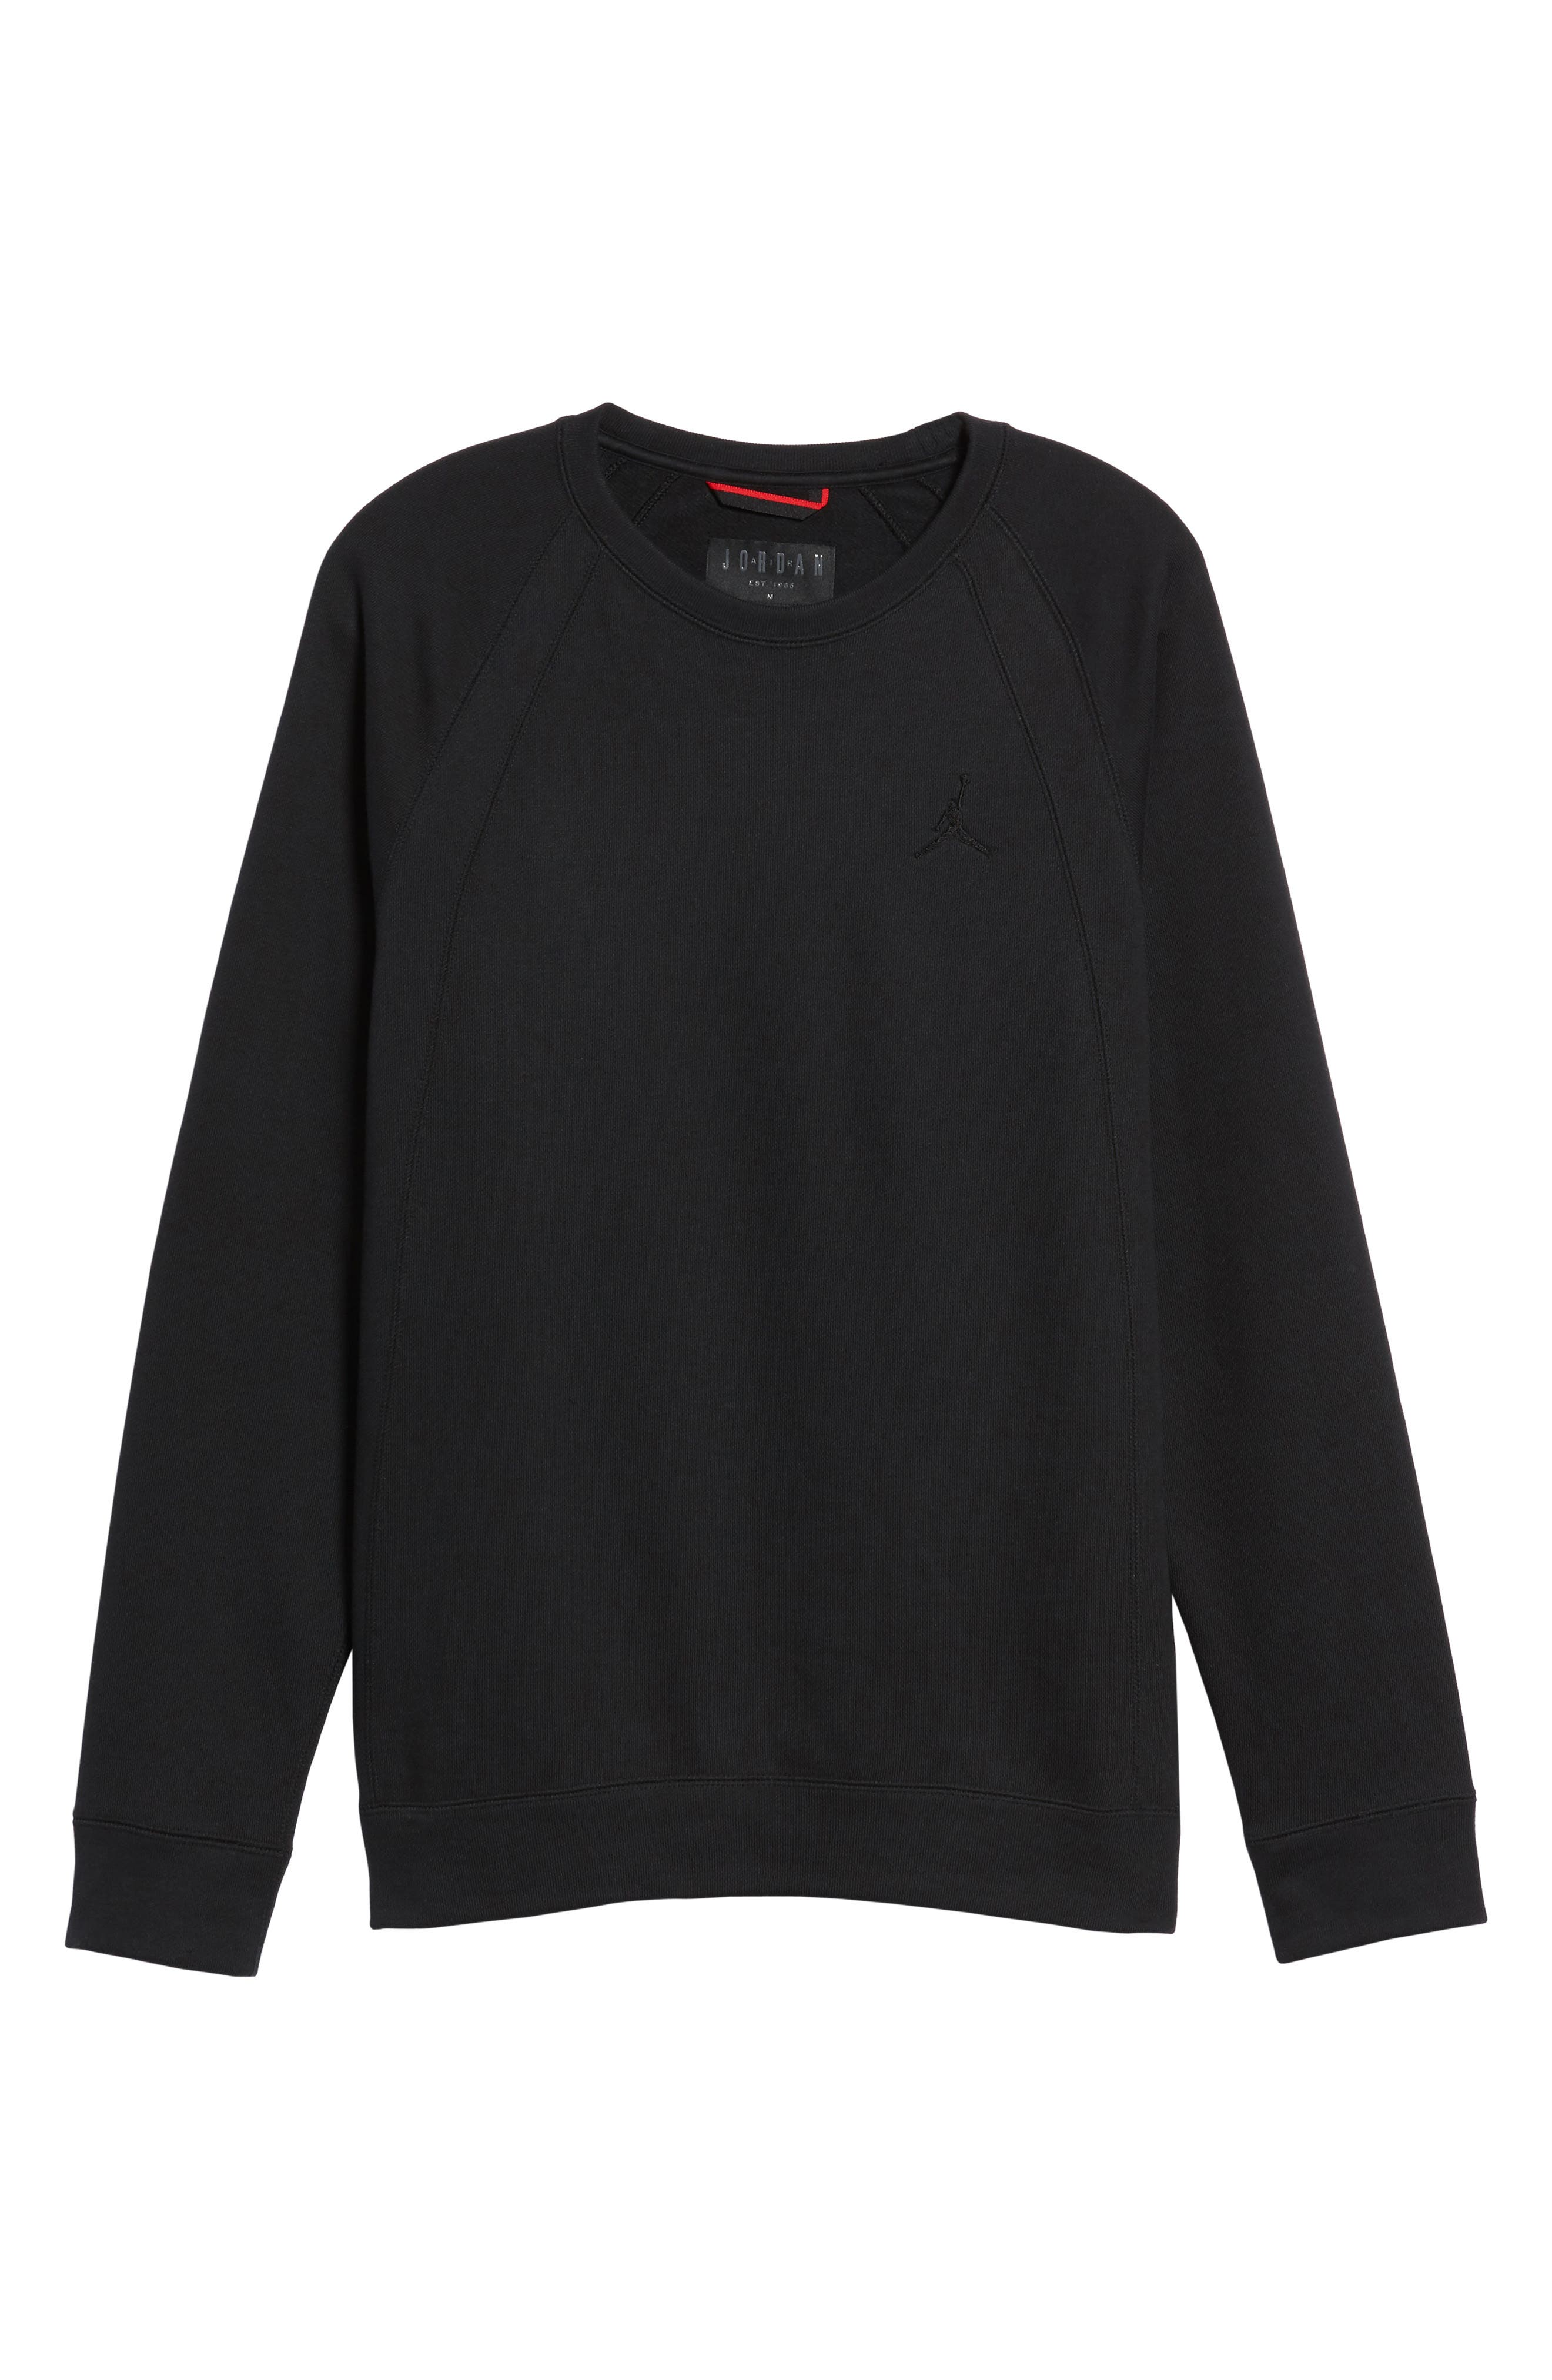 Jordan Sportswear Wings Pullover,                             Alternate thumbnail 6, color,                             Black/ Black